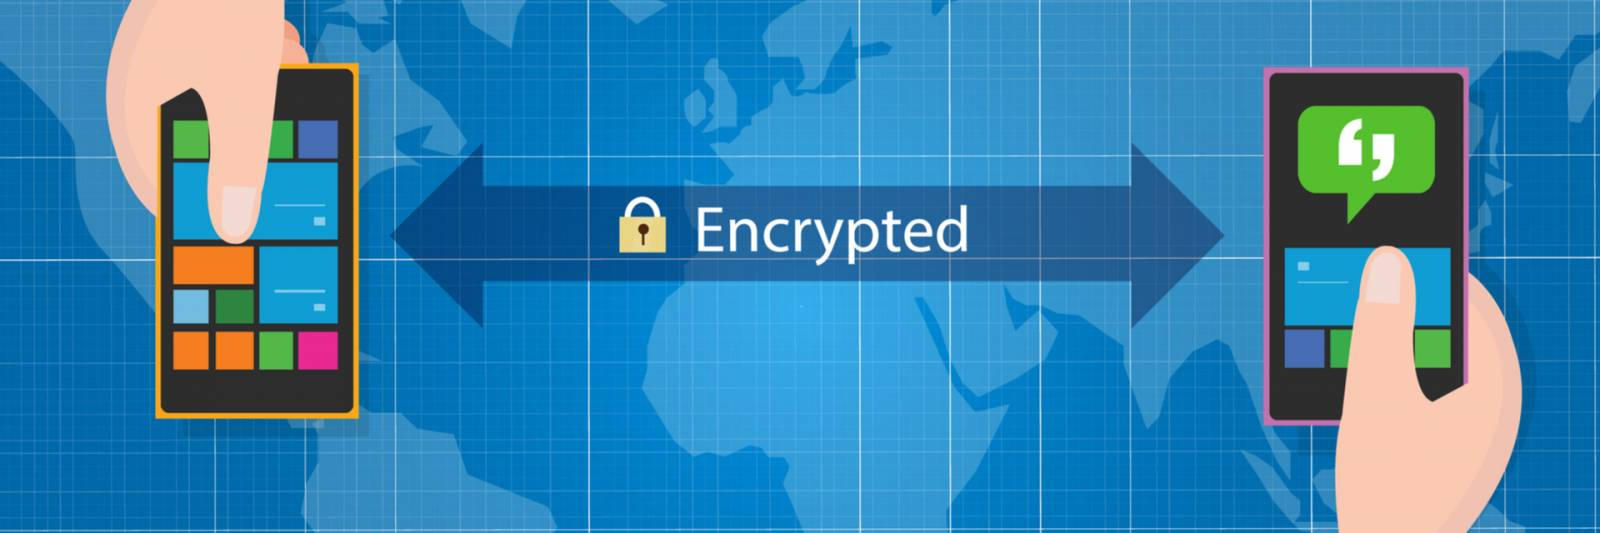 Google To Test End To End Encryption Following Global Rcs Rollout